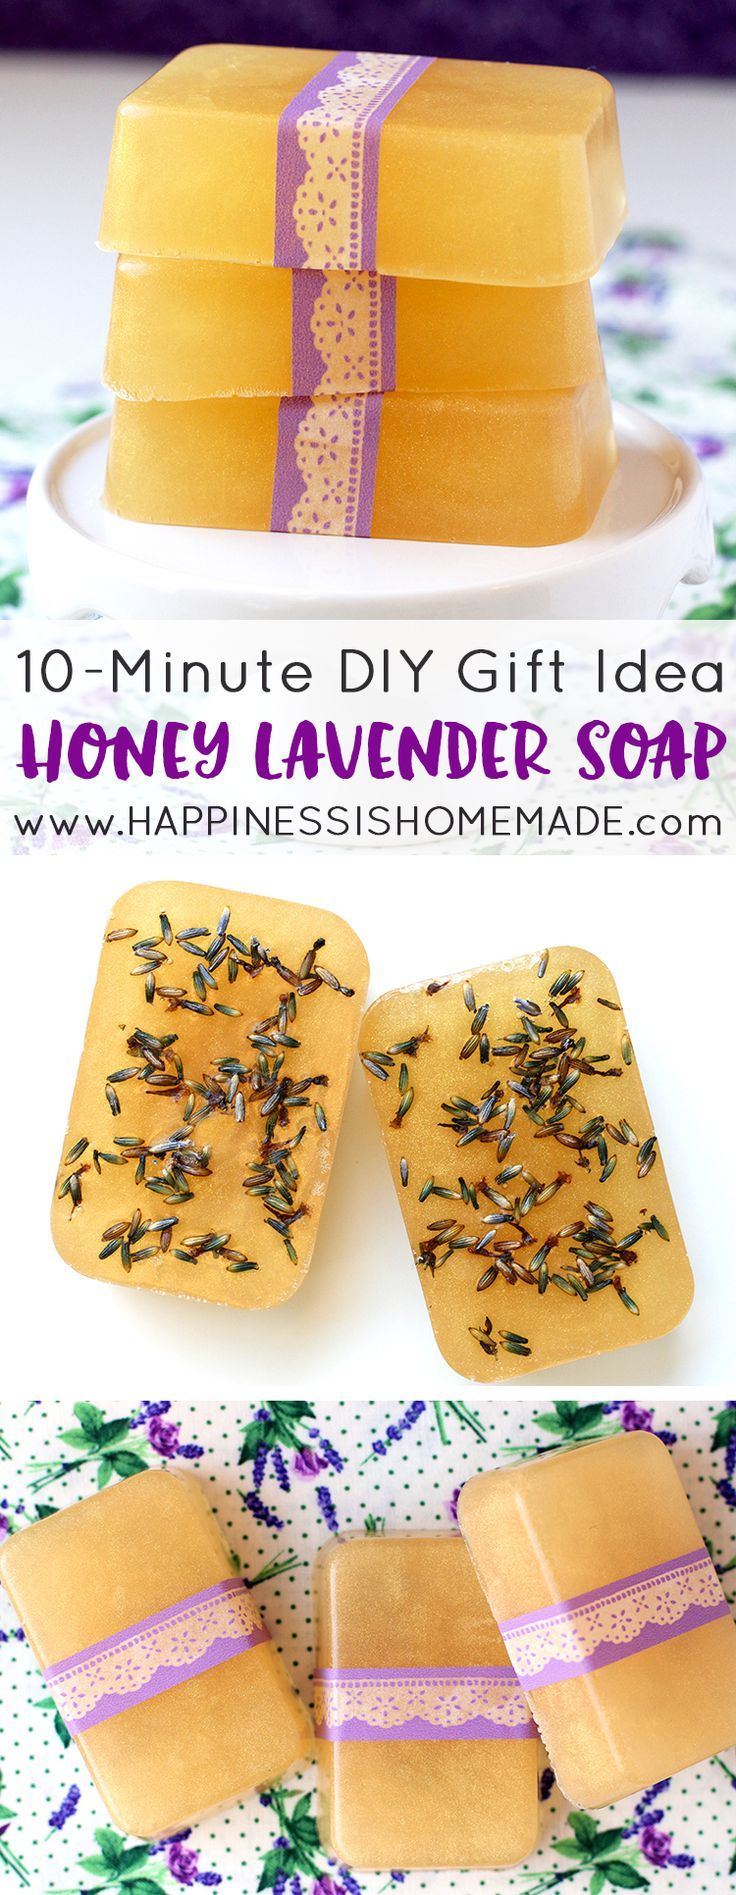 This Honey Lavender Soap smells amazing, and you can whip up a batch in just a few minutes! Makes a great DIY homemade holiday